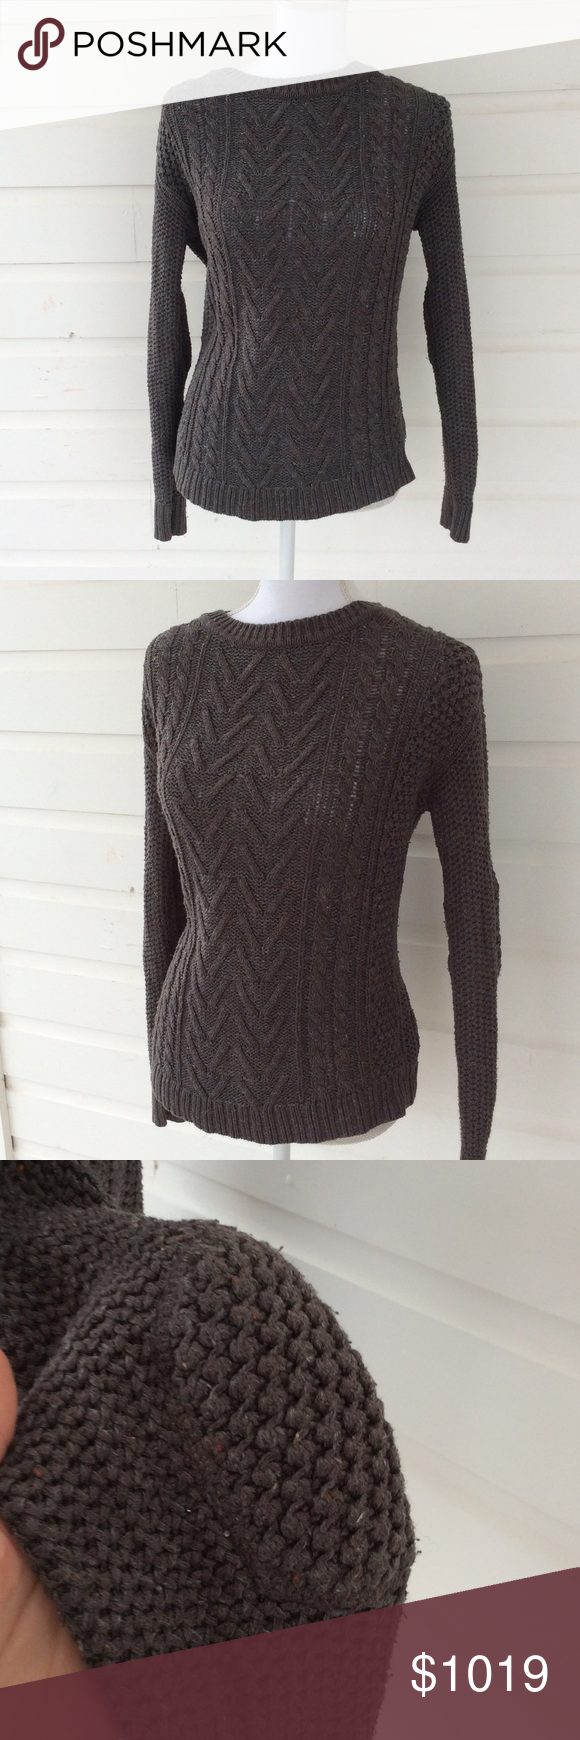 Urban Outfitters Gray Marled Cable Knit More to come in a few minutes Urban Outfitters Sweaters Crew & Scoop Necks